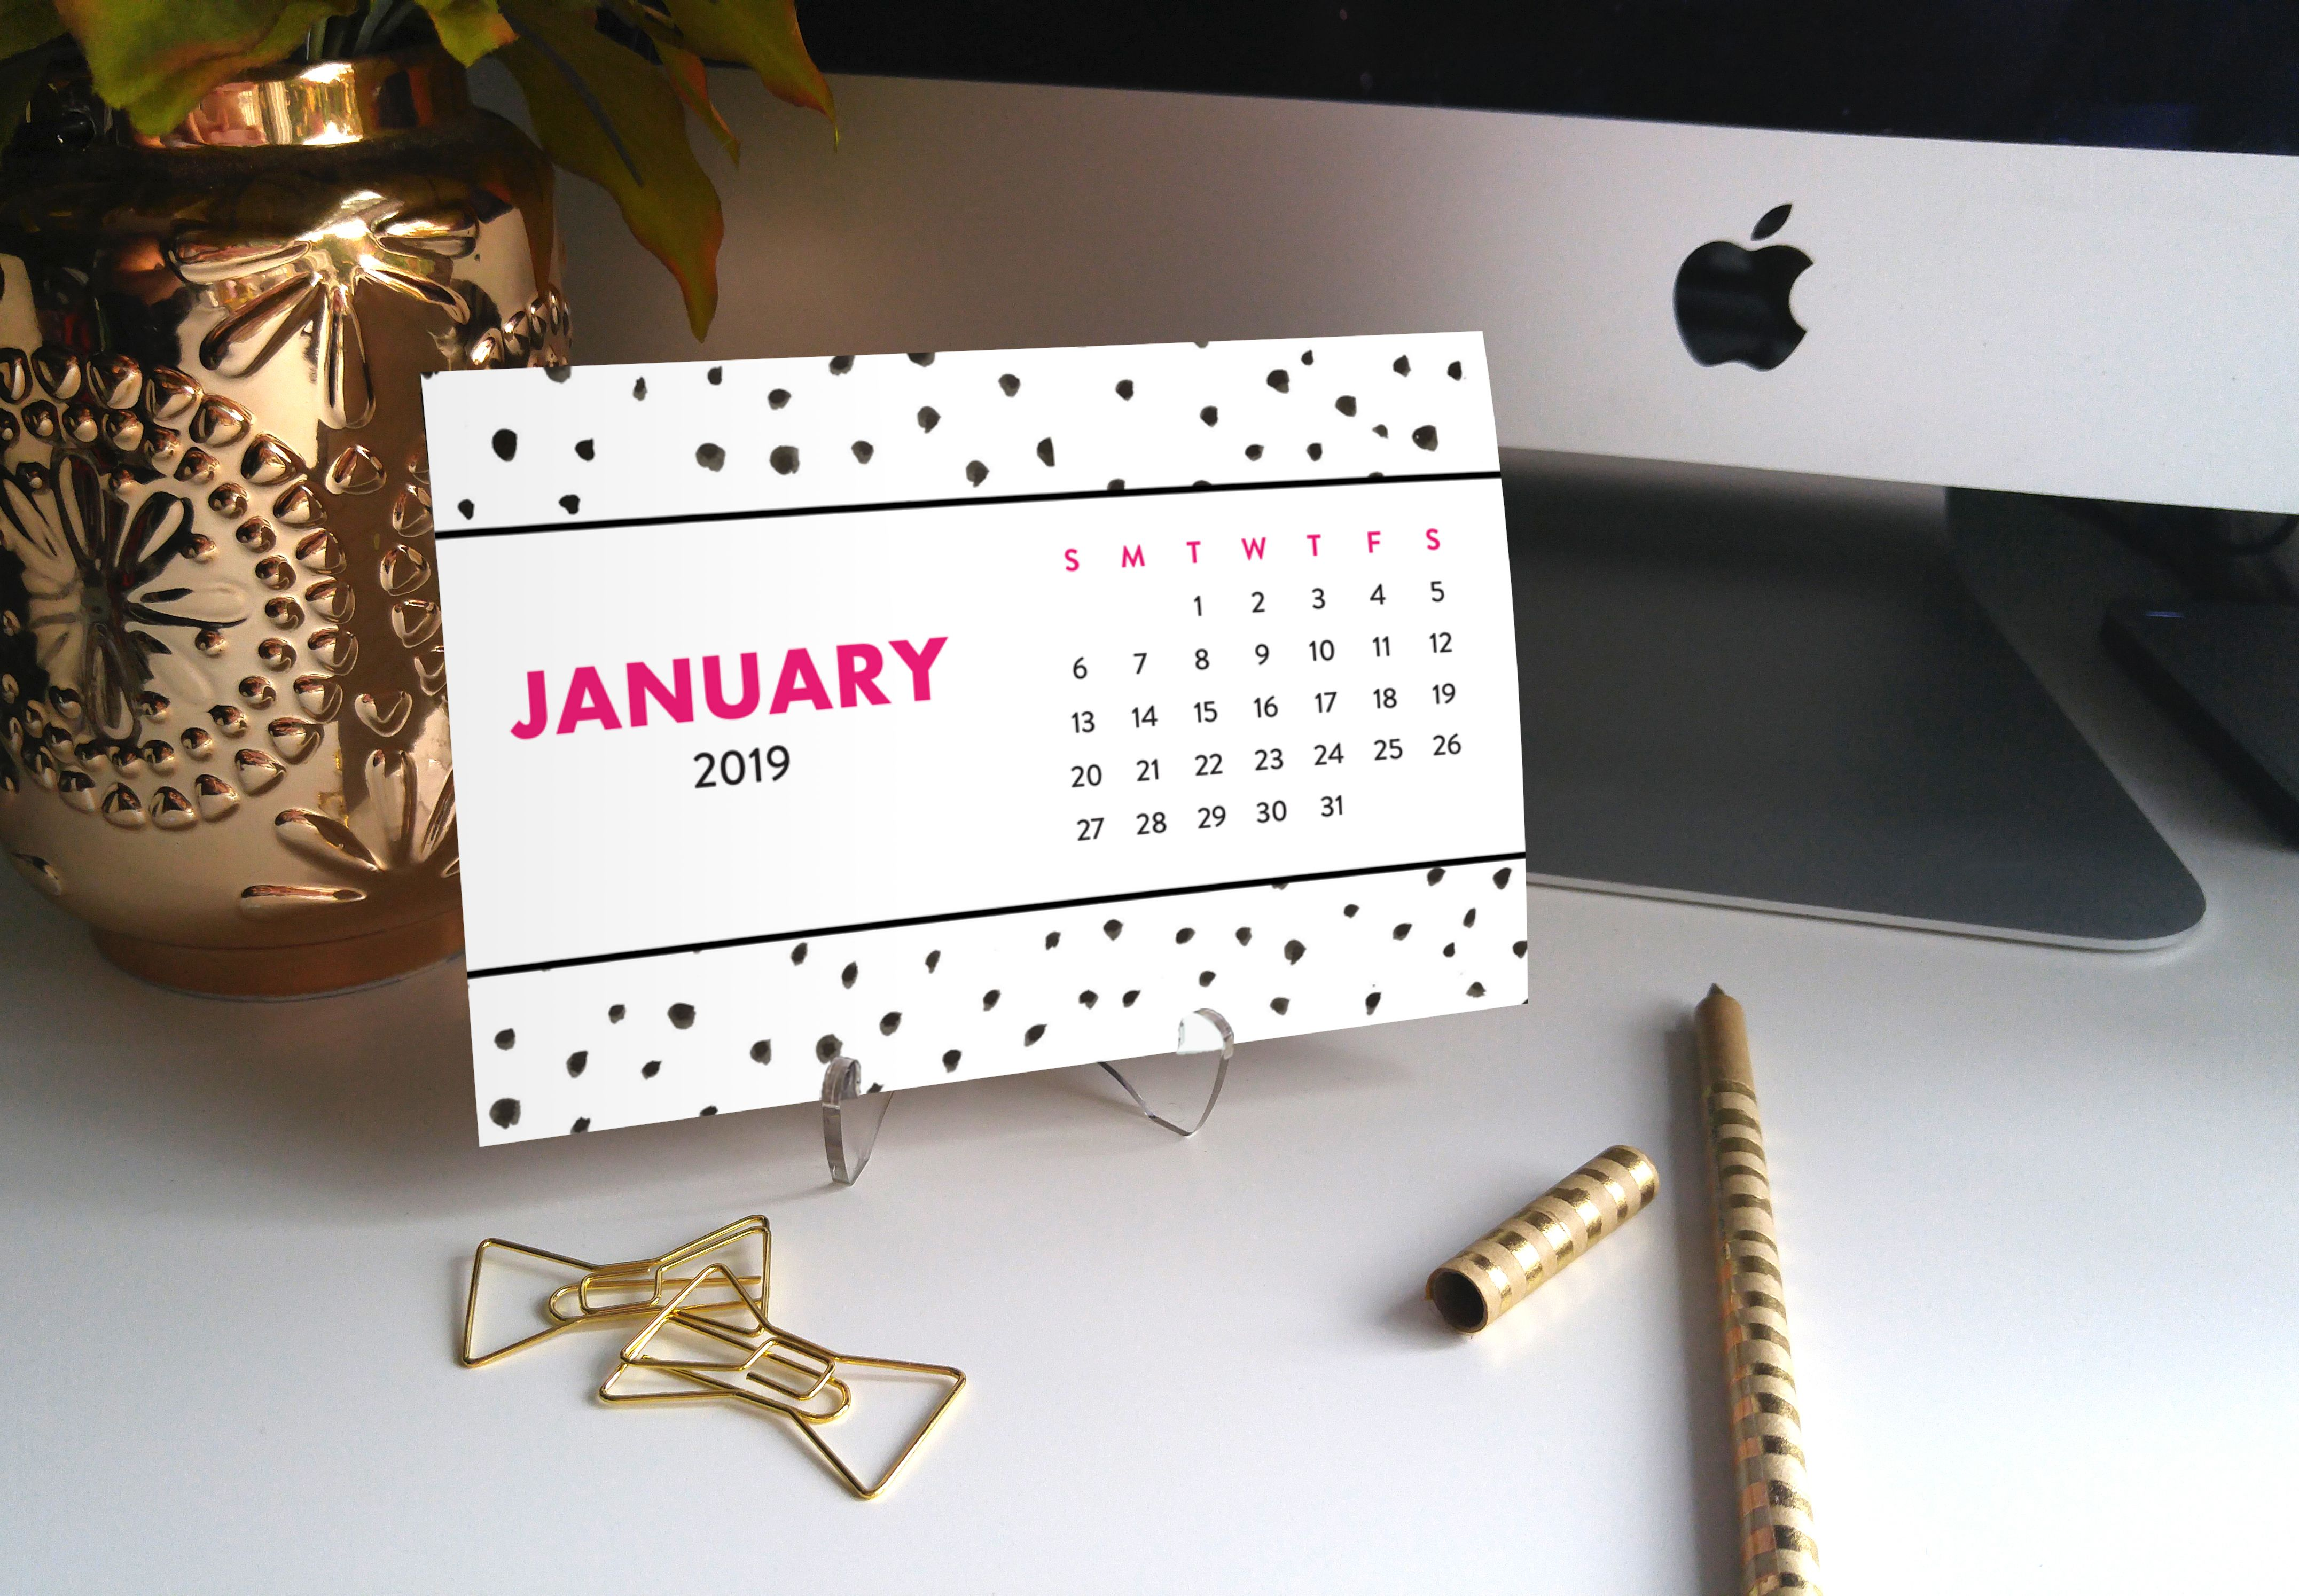 Wedding decorations ideas at home january 2019  Spotty Dots Desk Calendar by Digibuddha  Coll   Digibuddha